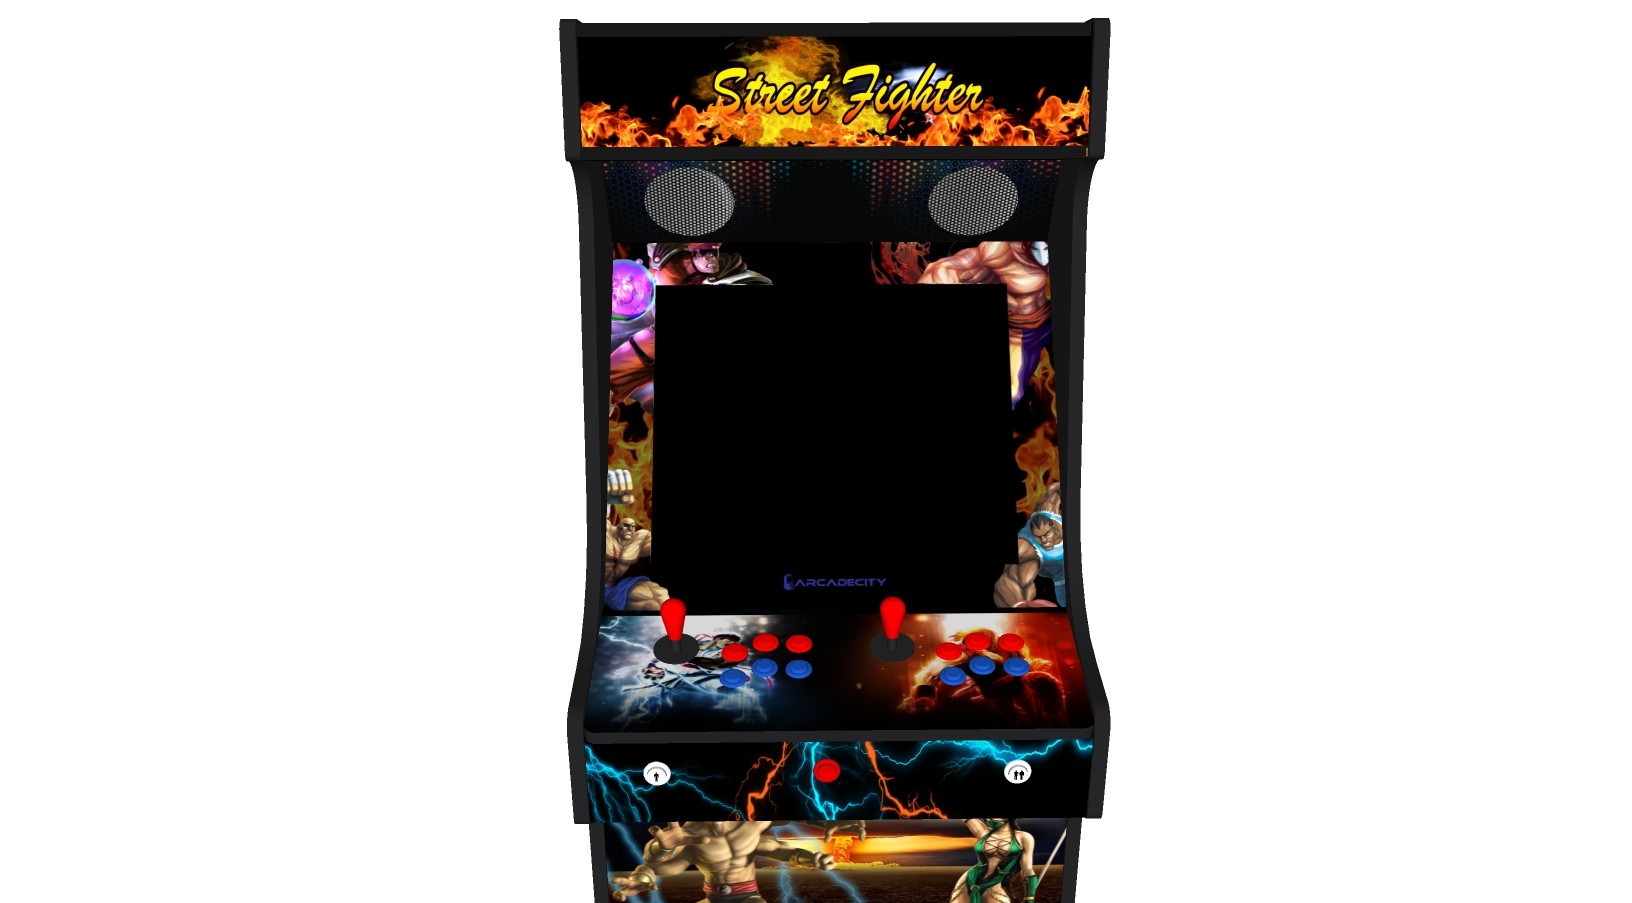 Classic Upright Arcade Machine - Street Fighter Theme v2 100w subwoofer 24 inch screen-left-middle